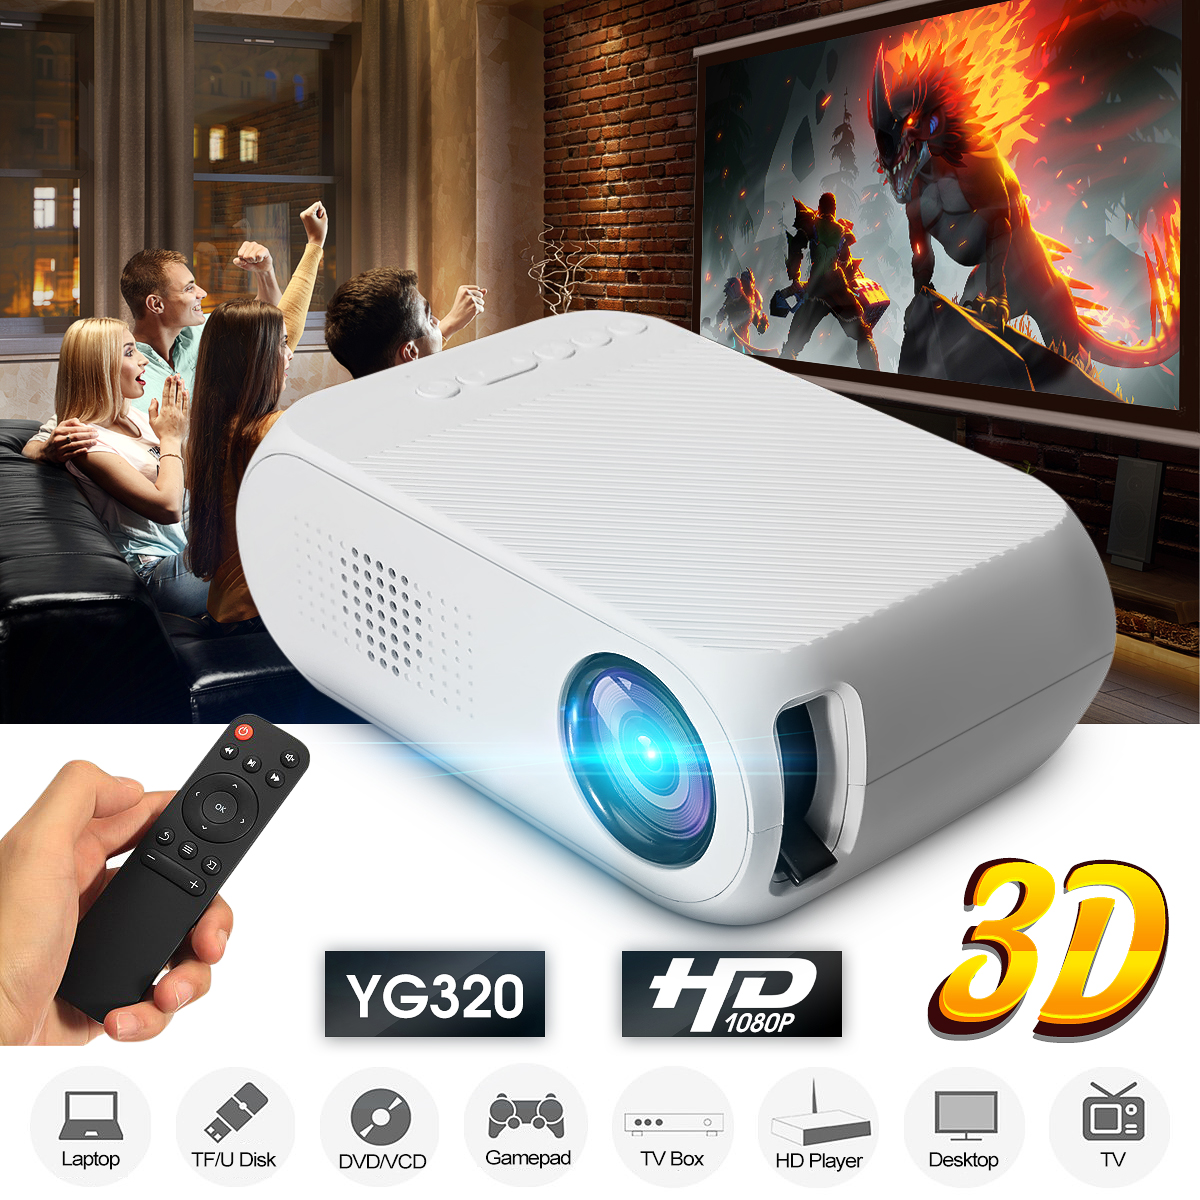 YG-320 Mini LCD LED 1080P HD Projector 400-600 Lumens 320 x 240 Pixels Home Video Theater Media Player Cinema Portable Projector